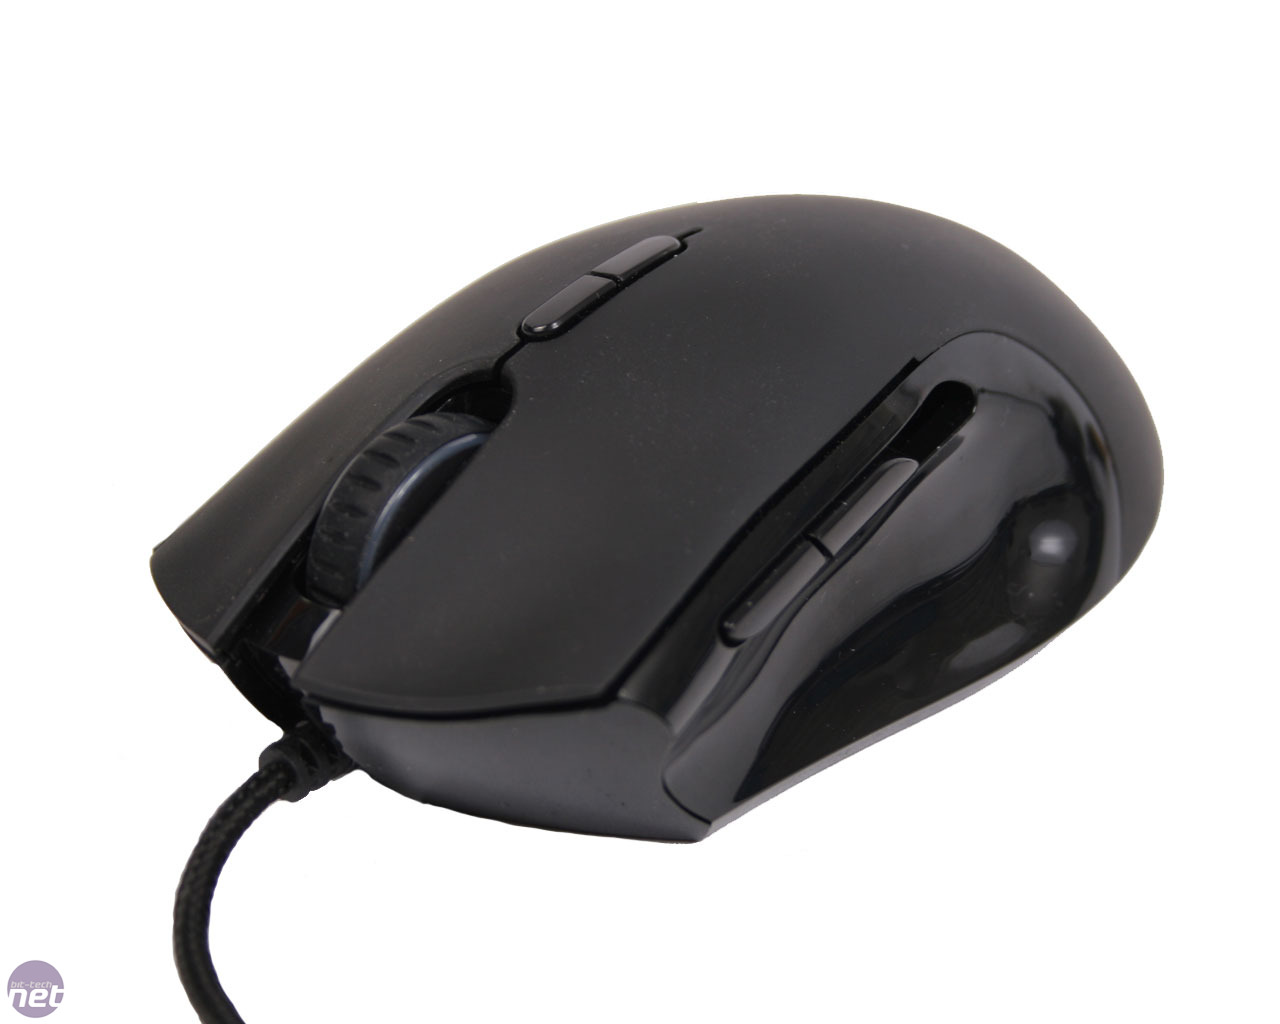 how to change your side buttons on a razer mouse